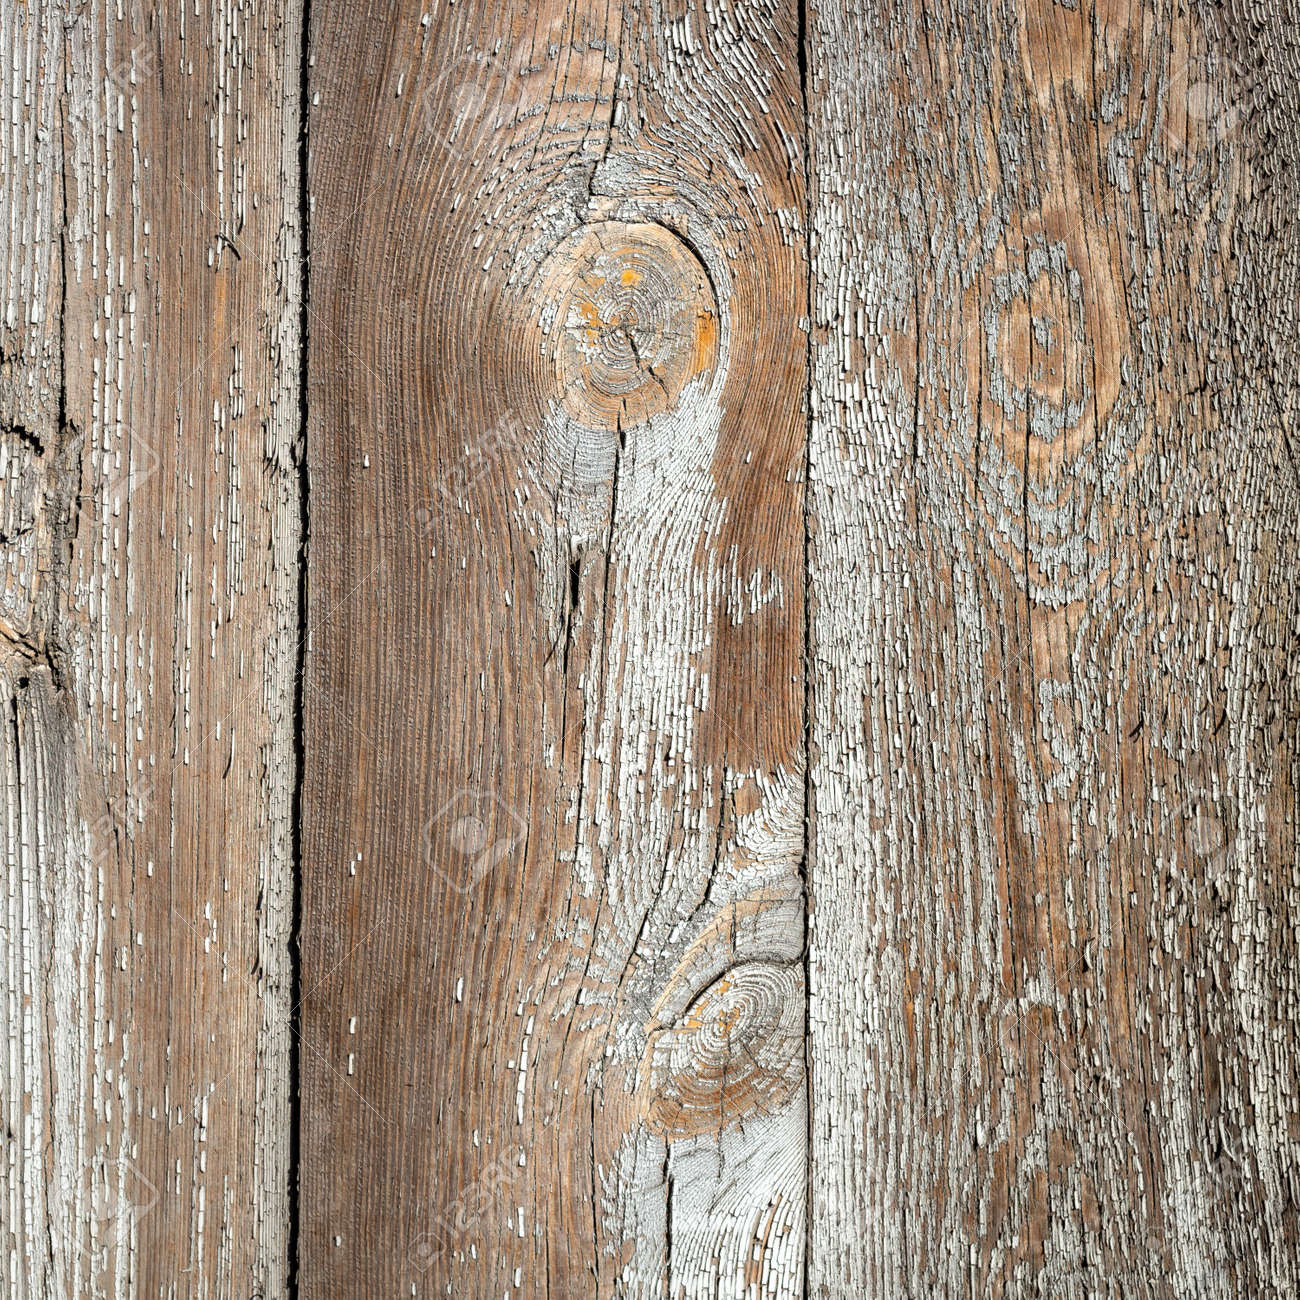 White wood texture with natural patterns background - 156758644